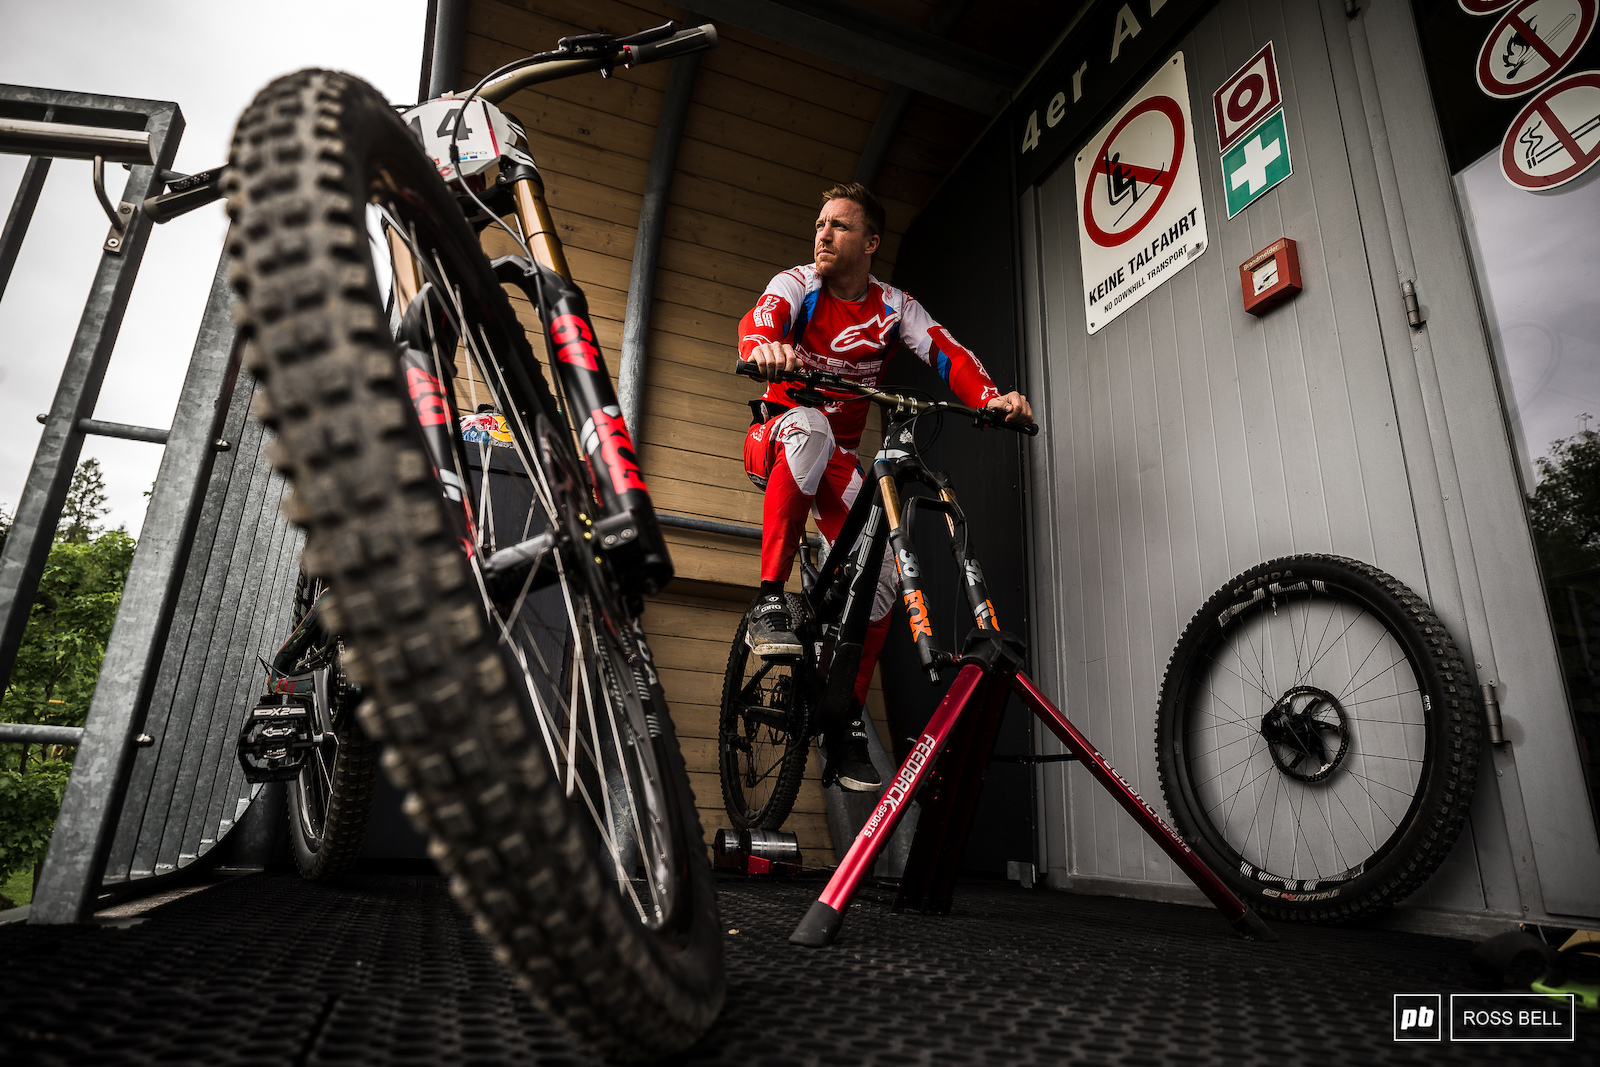 Aaron Gwin contemplates the upcoming 3 minute and 22 seconds once out the start gate.